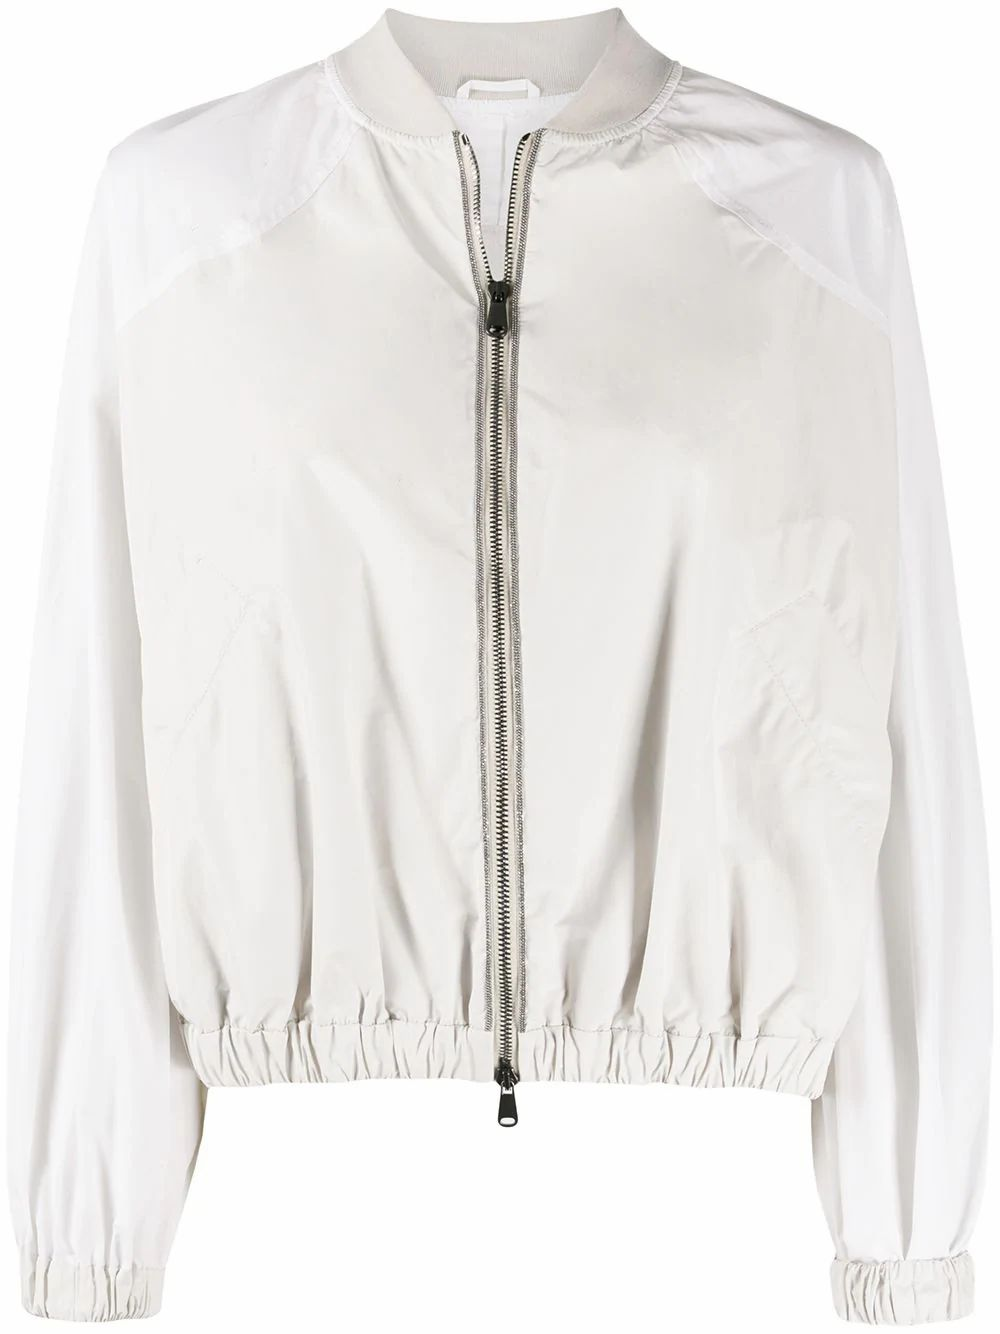 Brunello Cucinelli BRUNELLO CUCINELLI WOMEN'S MB5742530C1709 WHITE POLYESTER OUTERWEAR JACKET